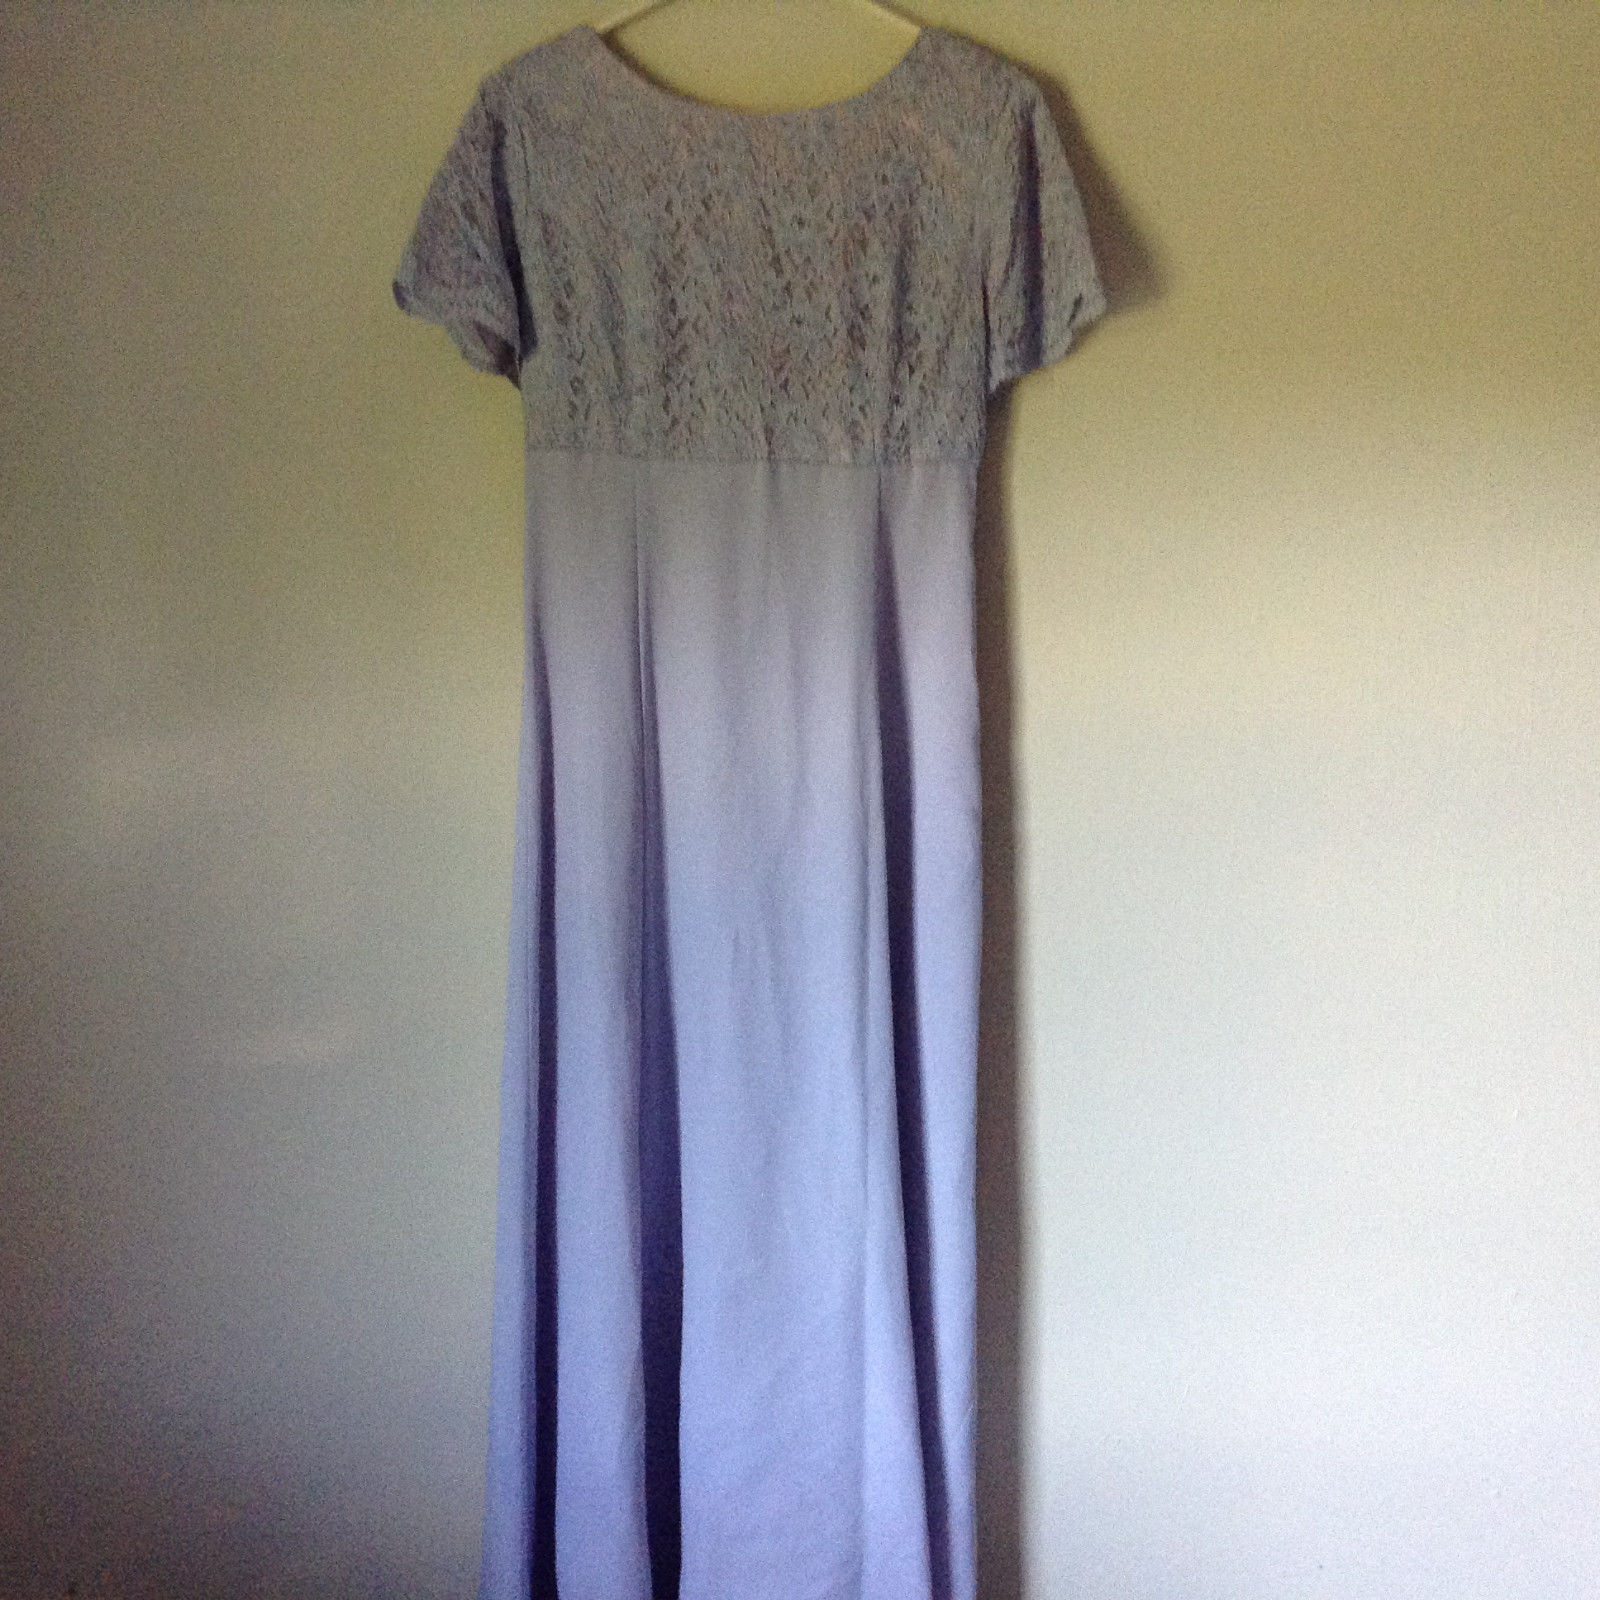 Light Purple Lavender Gown Dress Flowers on Back Light Shoulder Pads No Tag